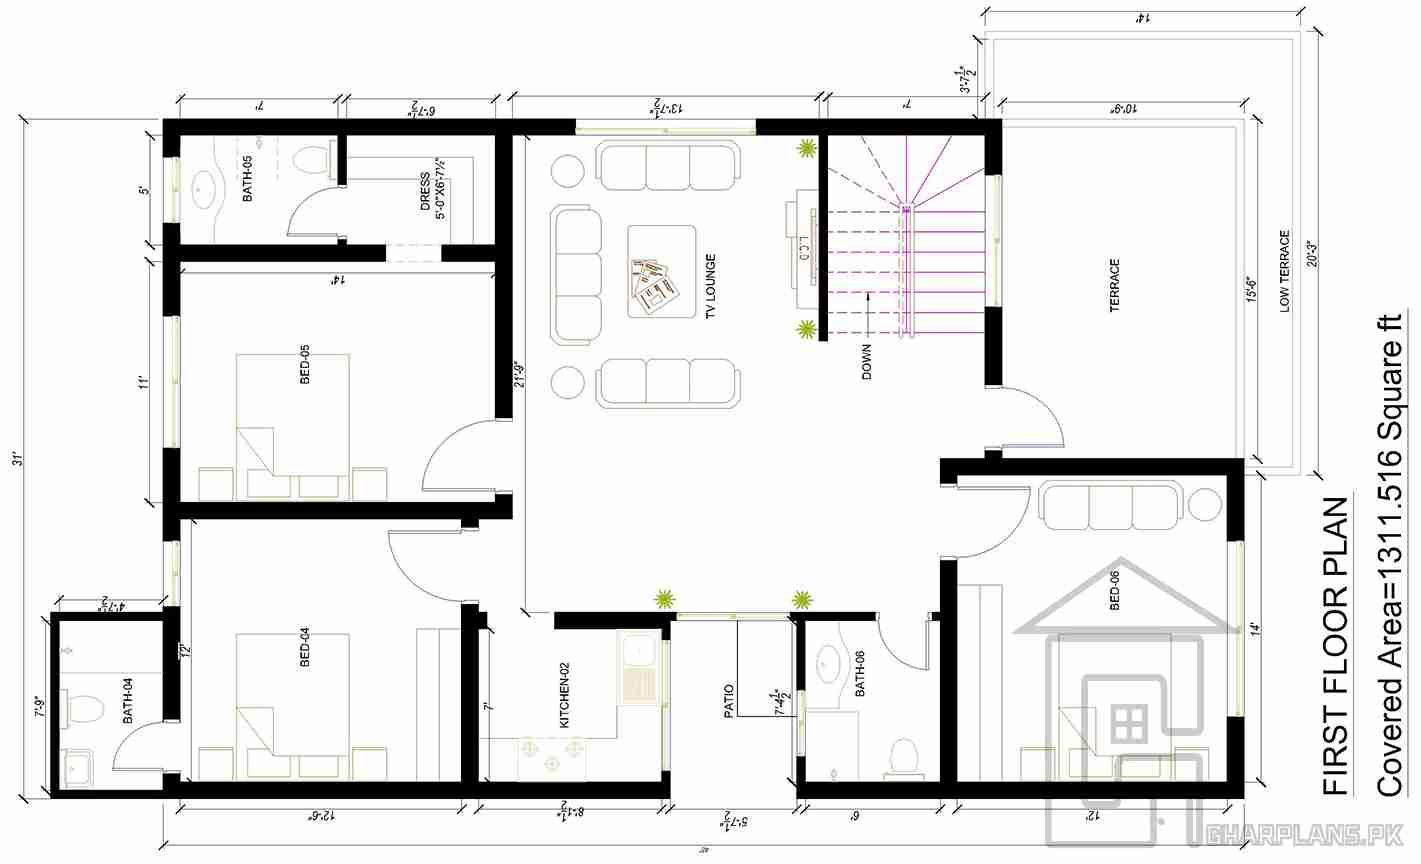 10 marla house map with basement first floor yash for Map of home design